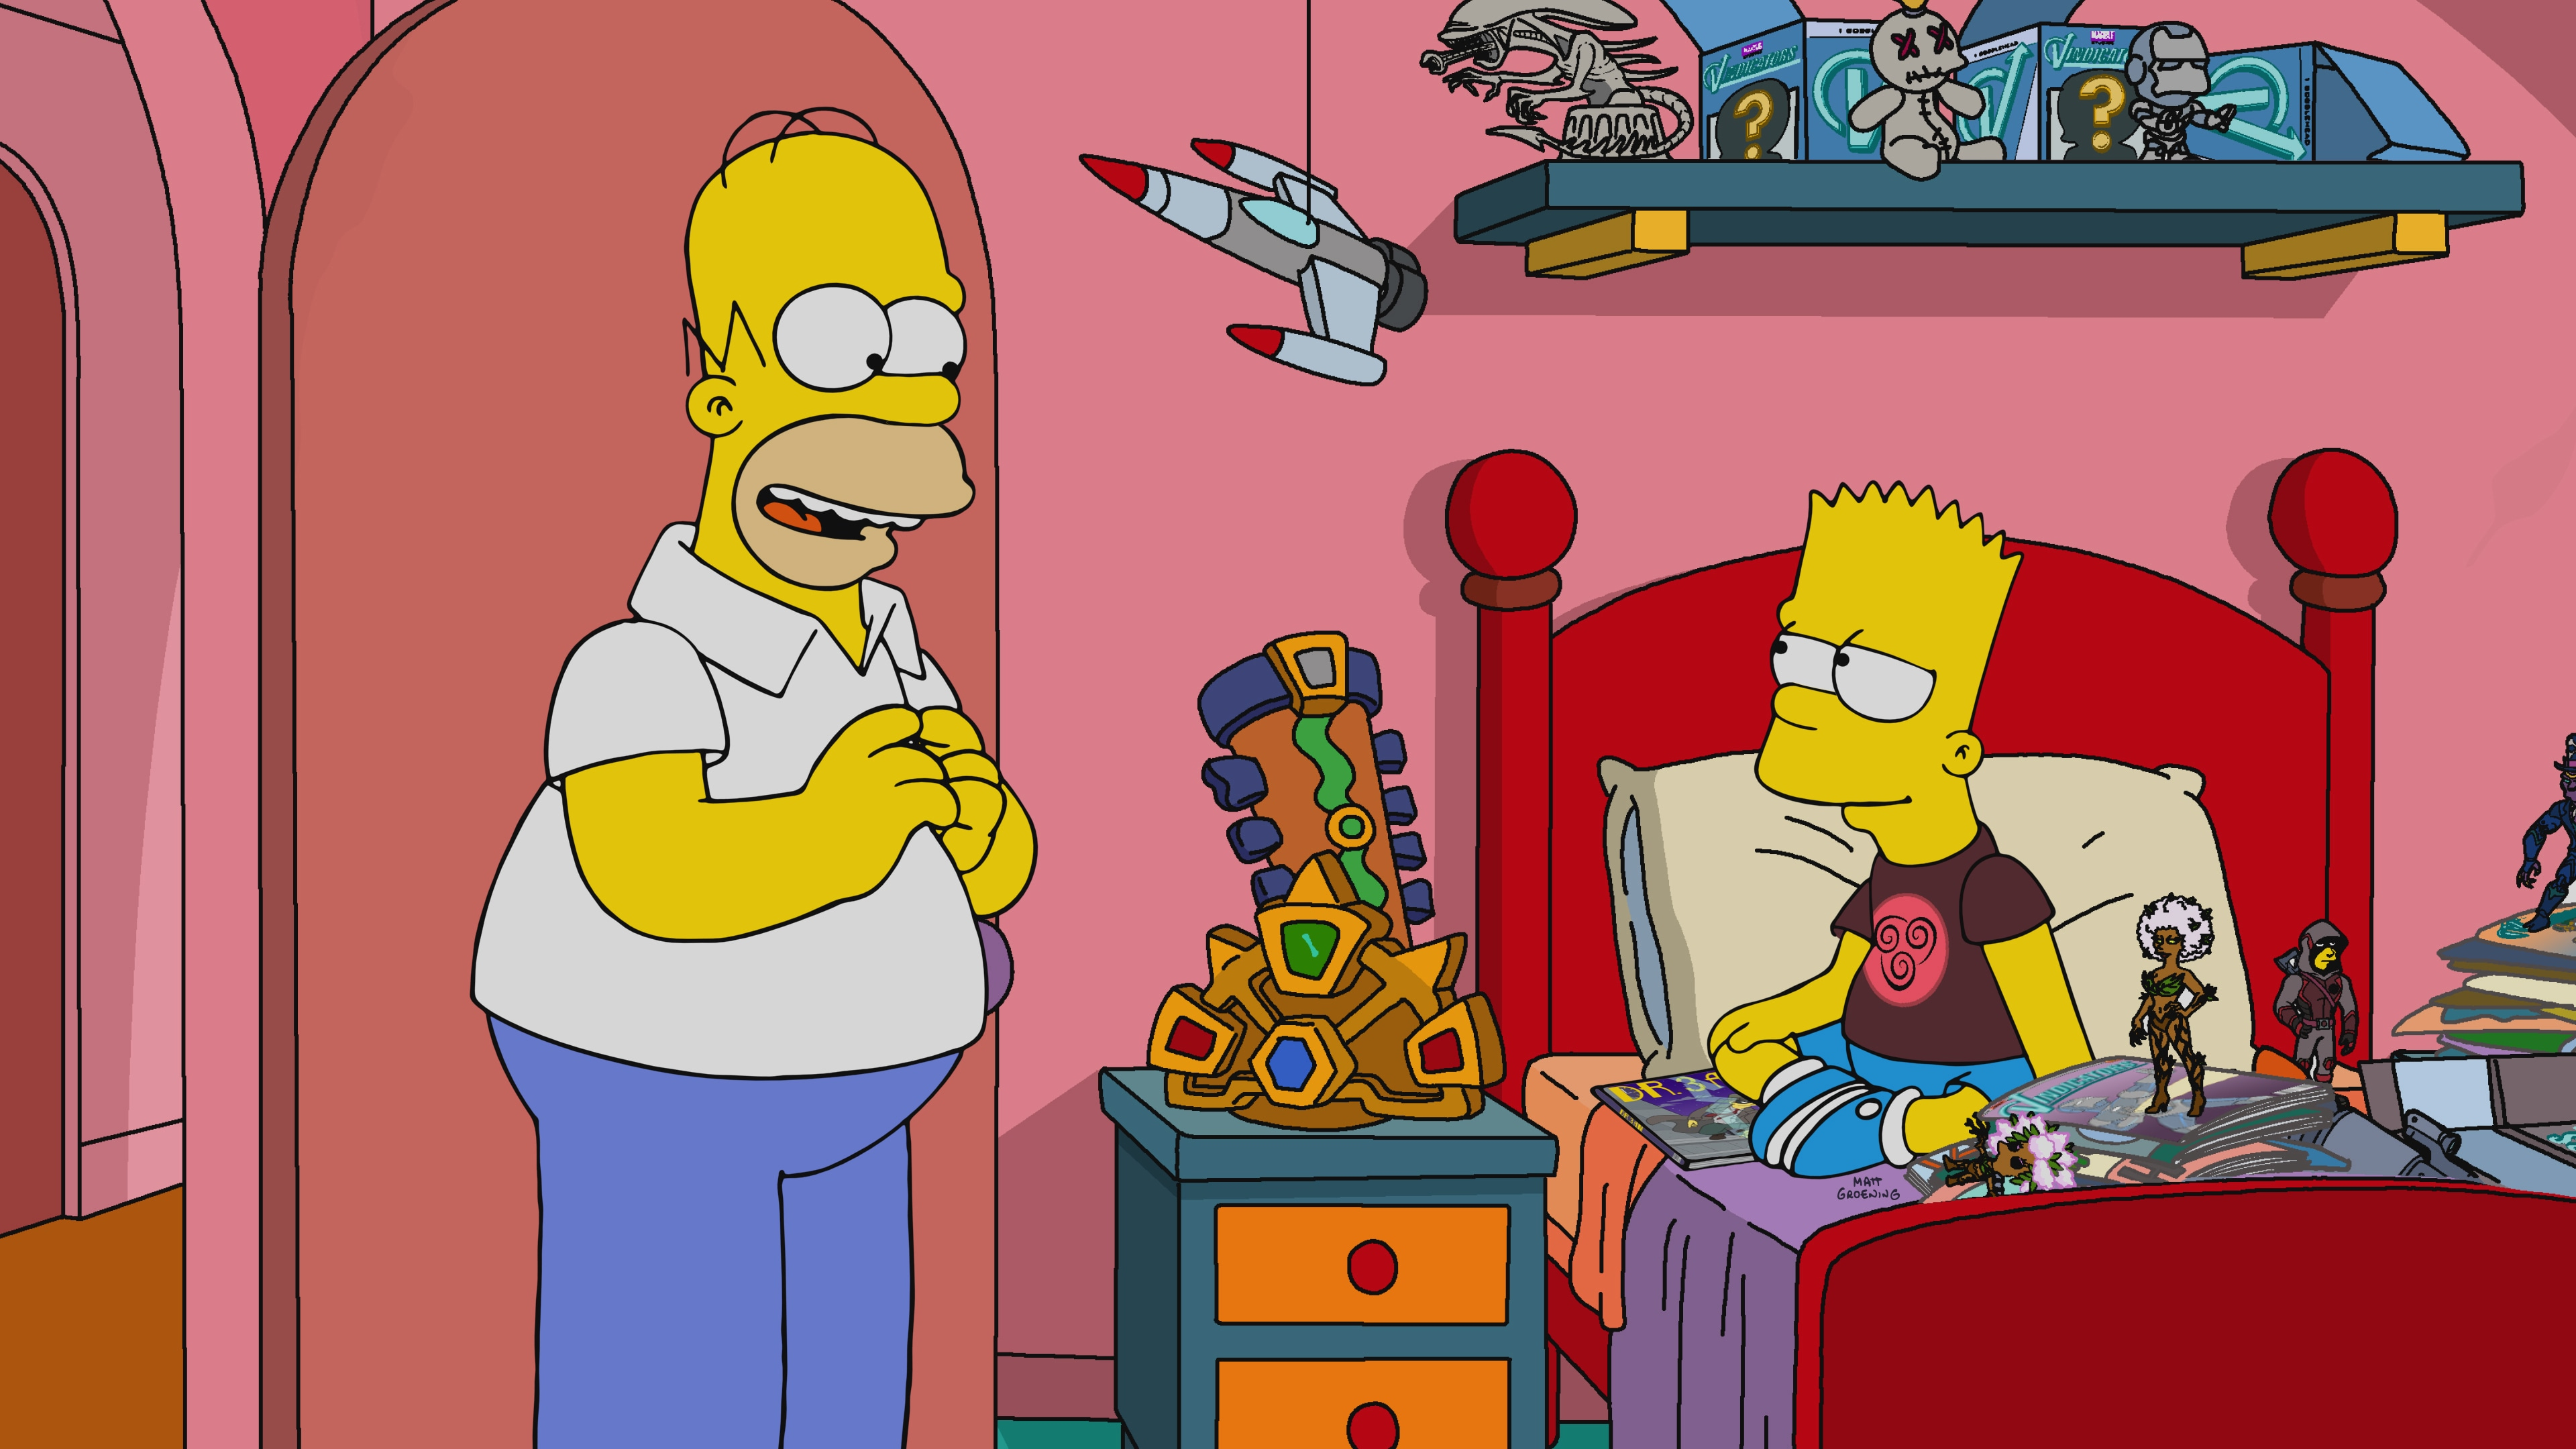 """THE SIMPSONS: Bart accidentally sees a brand-new superhero movie a month before it comes out… and the world cowers before his newfound plot-spoiling powers. Thus, a new super-villain is born: Spoiler Boy! Can heroic movie executives stop Bart before he succumbs to the temptations of ultimate evil? Find out in the """"Bart the Bad Guy"""" episode of THE SIMPSONS."""